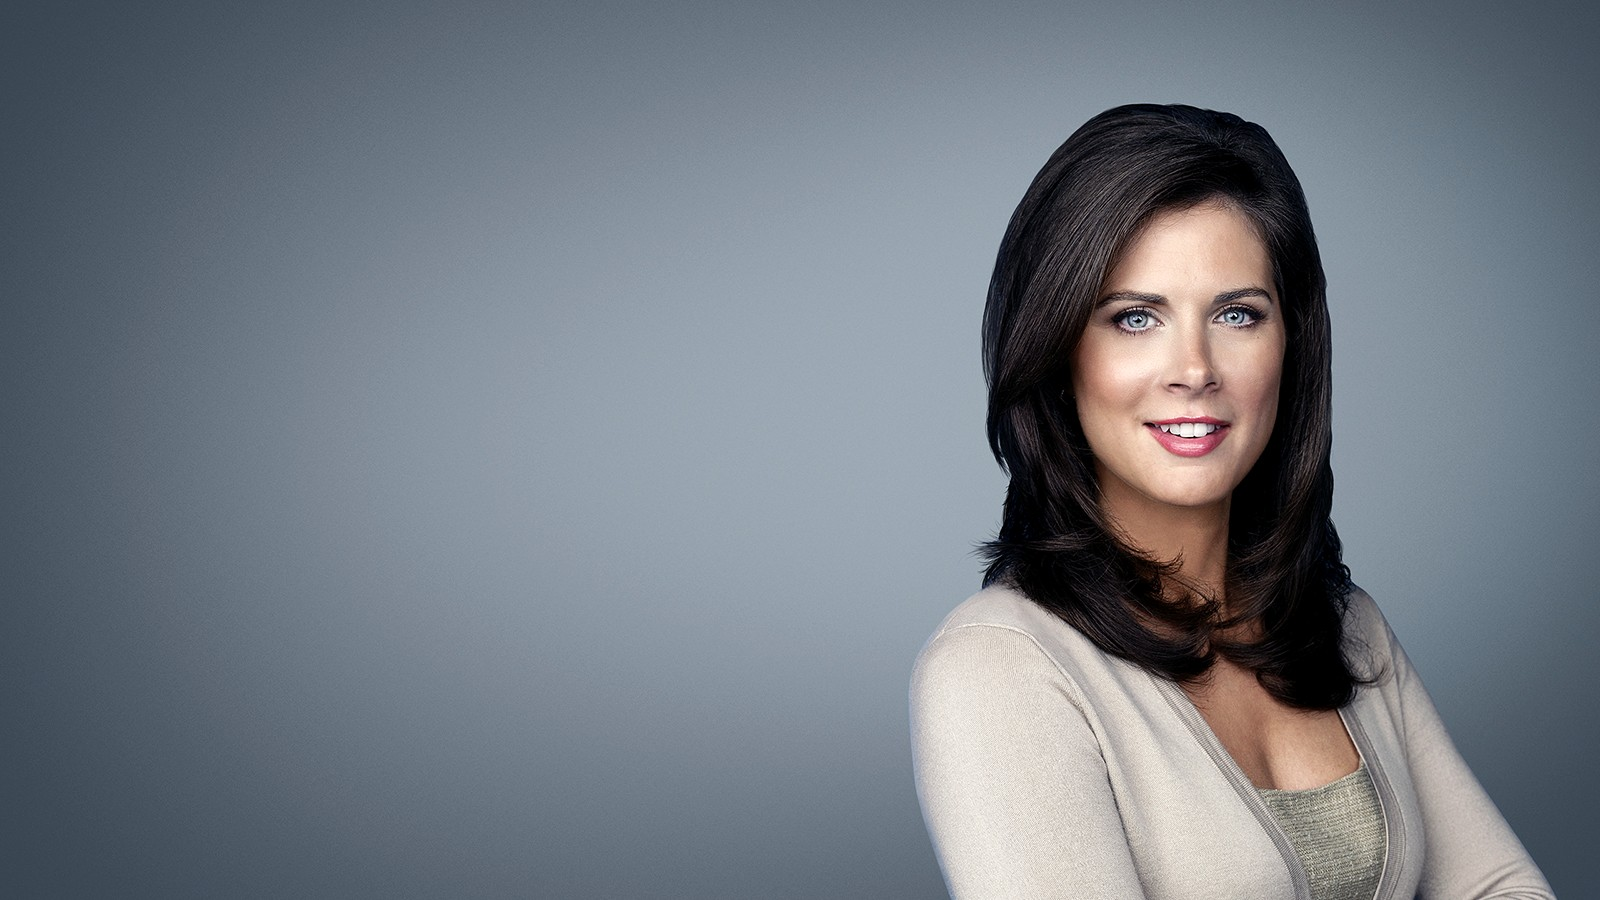 Erin Burnett Hot Bikini Pics, News Host Kissing Scene 11